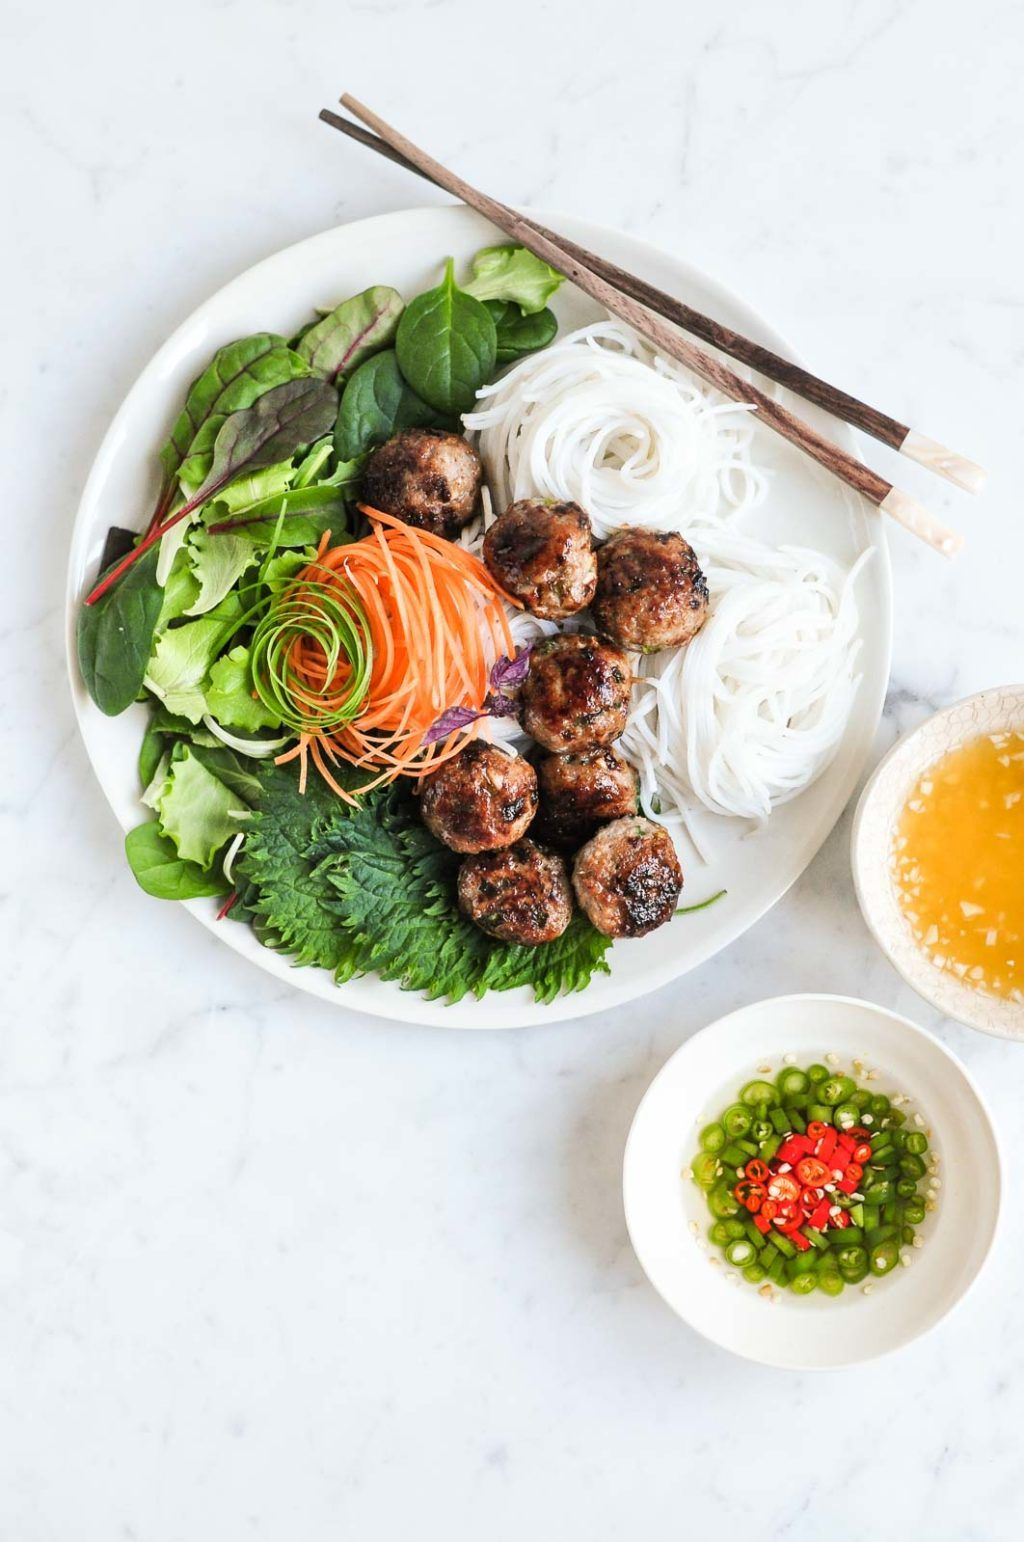 Cuisine Royale Brightness Too High Bun Cha Vietnamese Meatballs With Vietnamese Noodle Salad